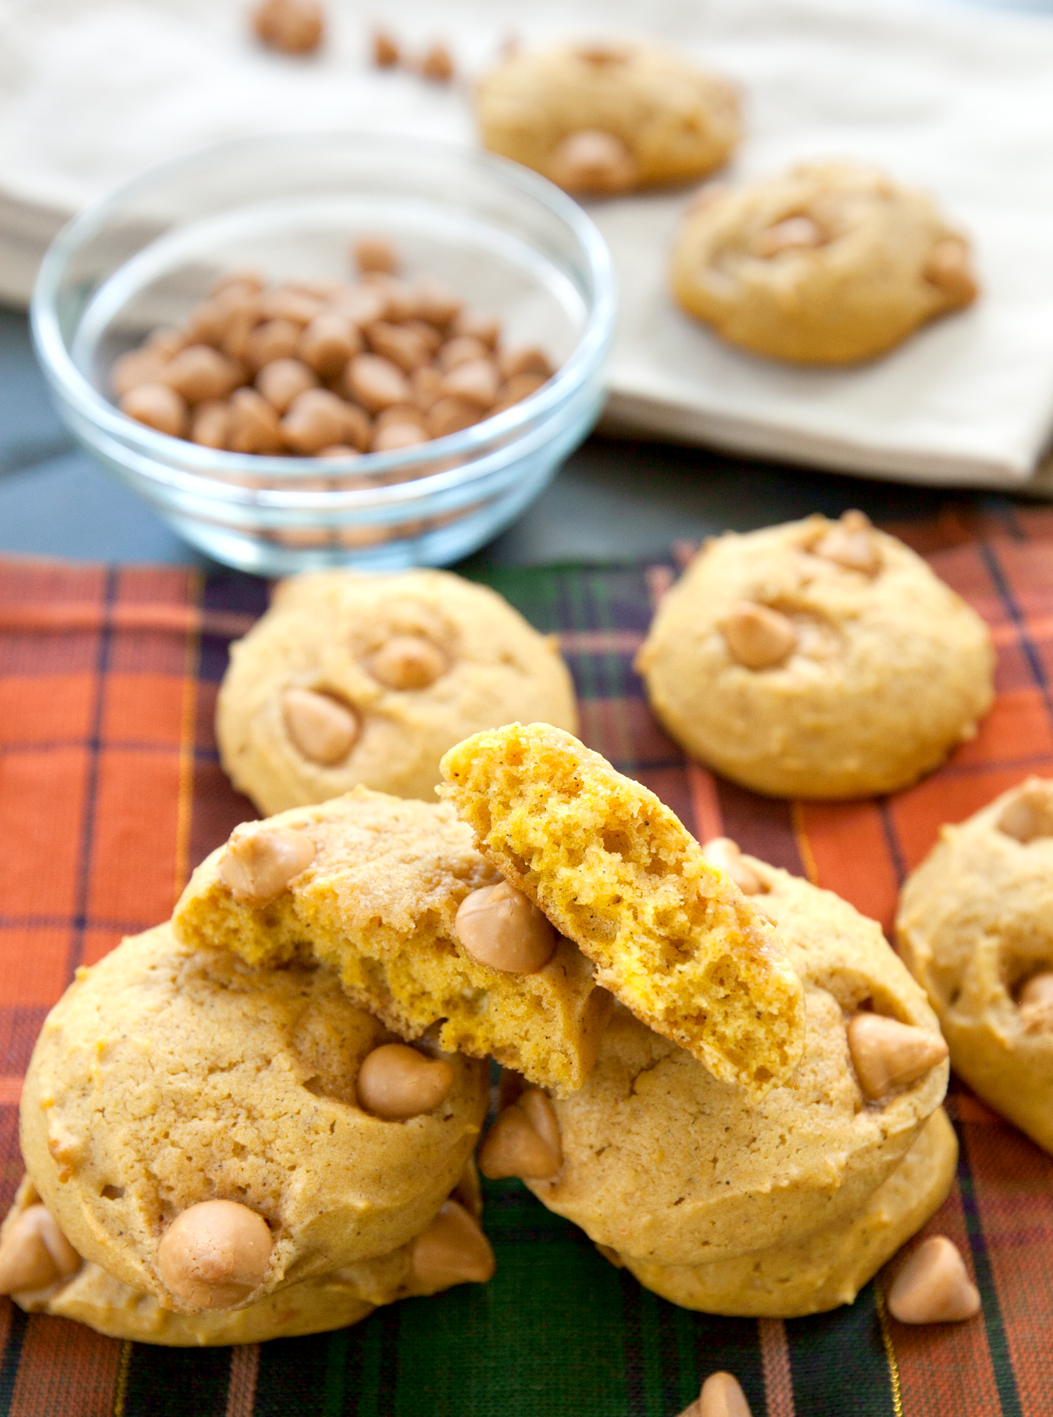 Pumpkin butterscotch cookies with one broken in half to see the soft cake-like texture inside.